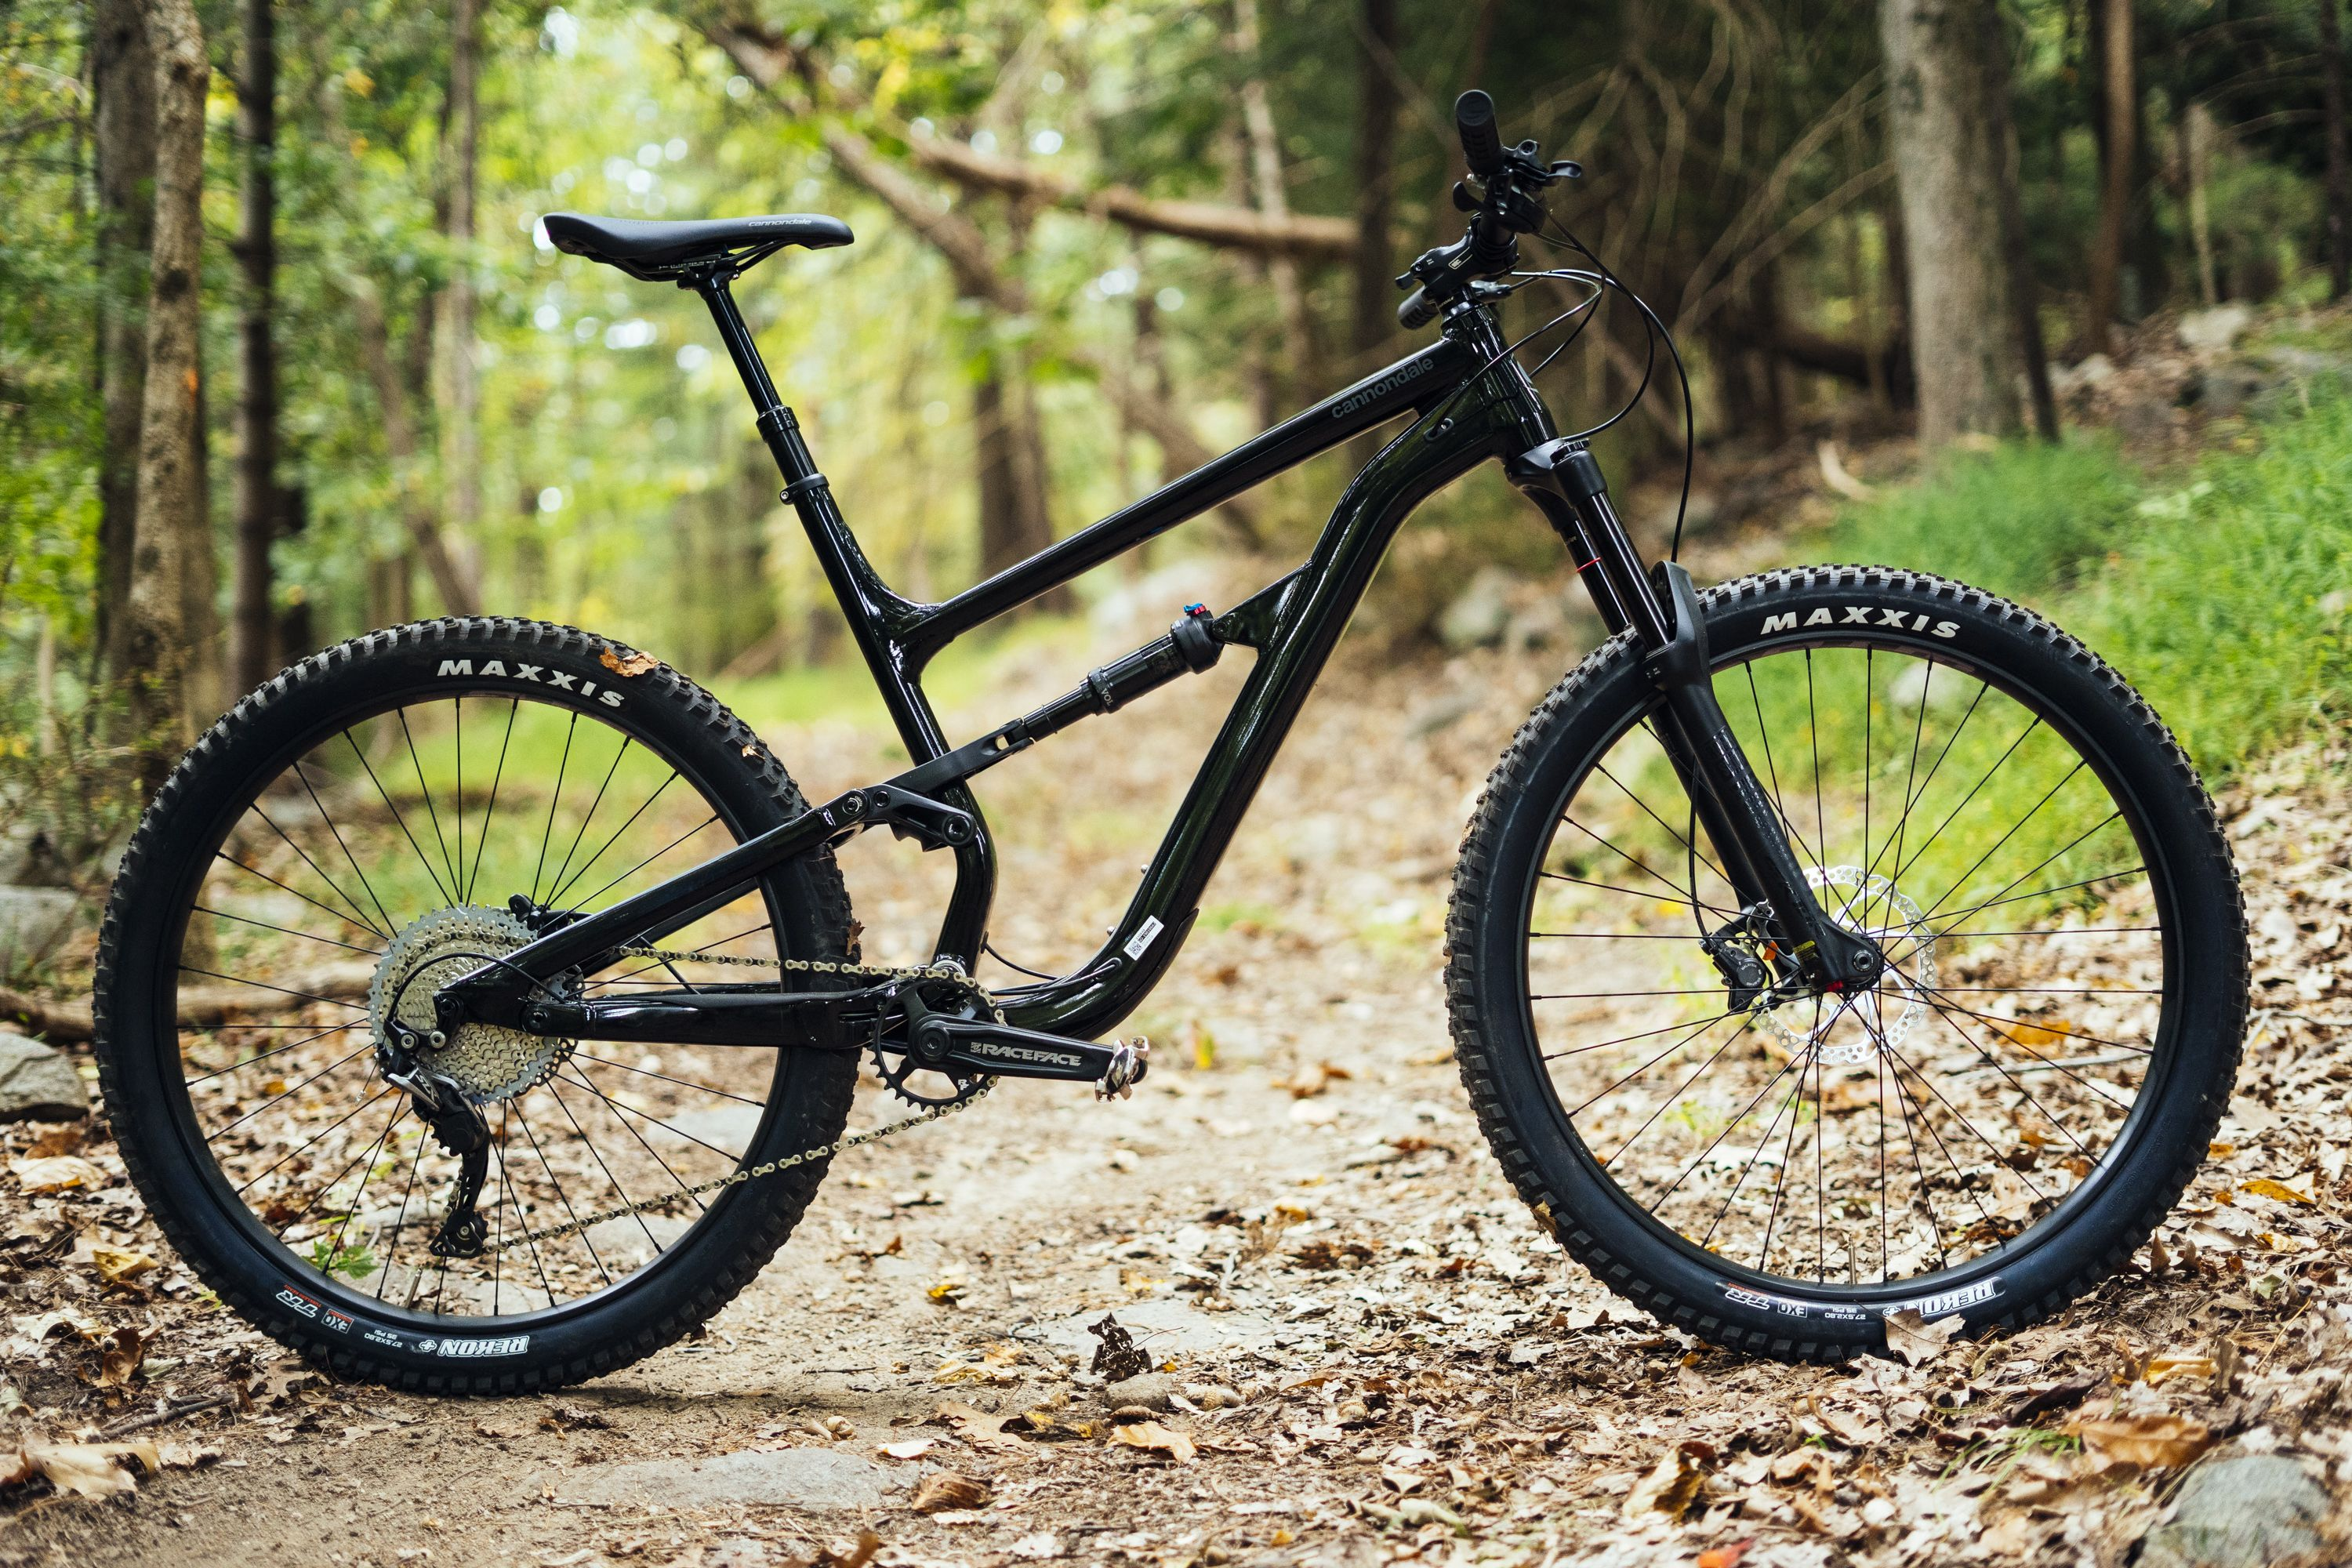 The Ultimate Beginner's Guide to Finding A Bike